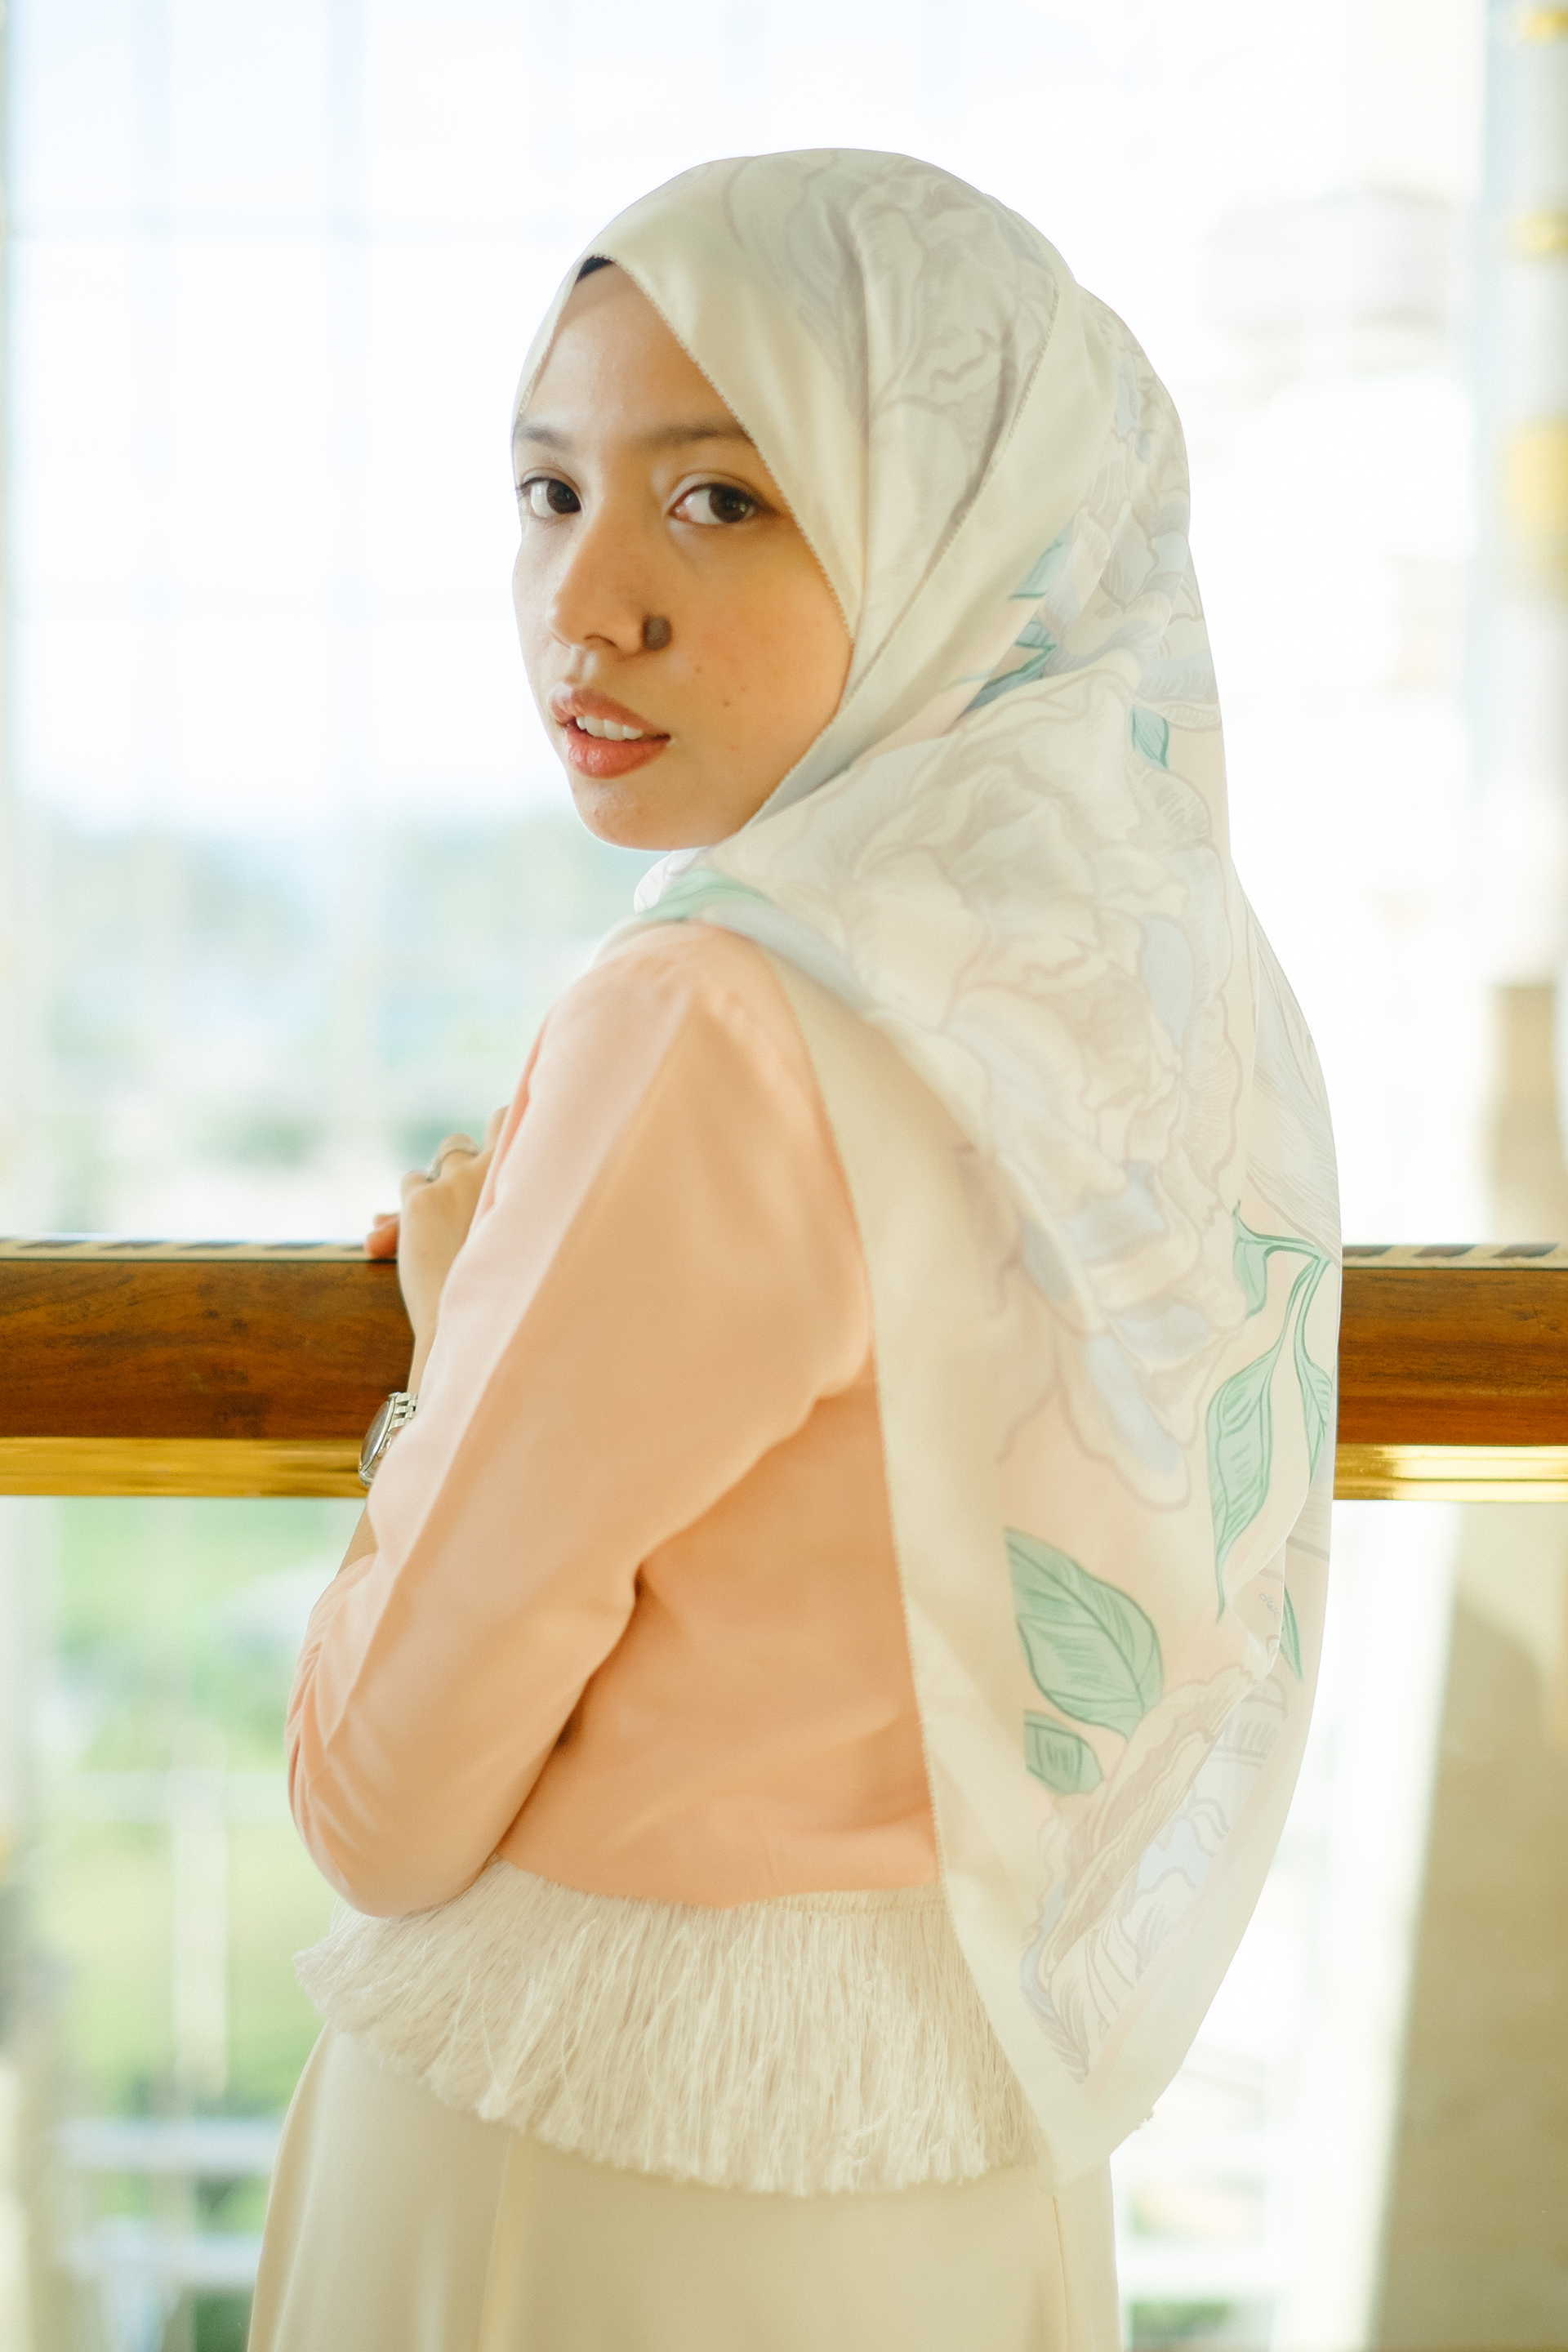 Wearing the most sought after scarf, The Blooming Duck in White. Picture credit to Zahra.